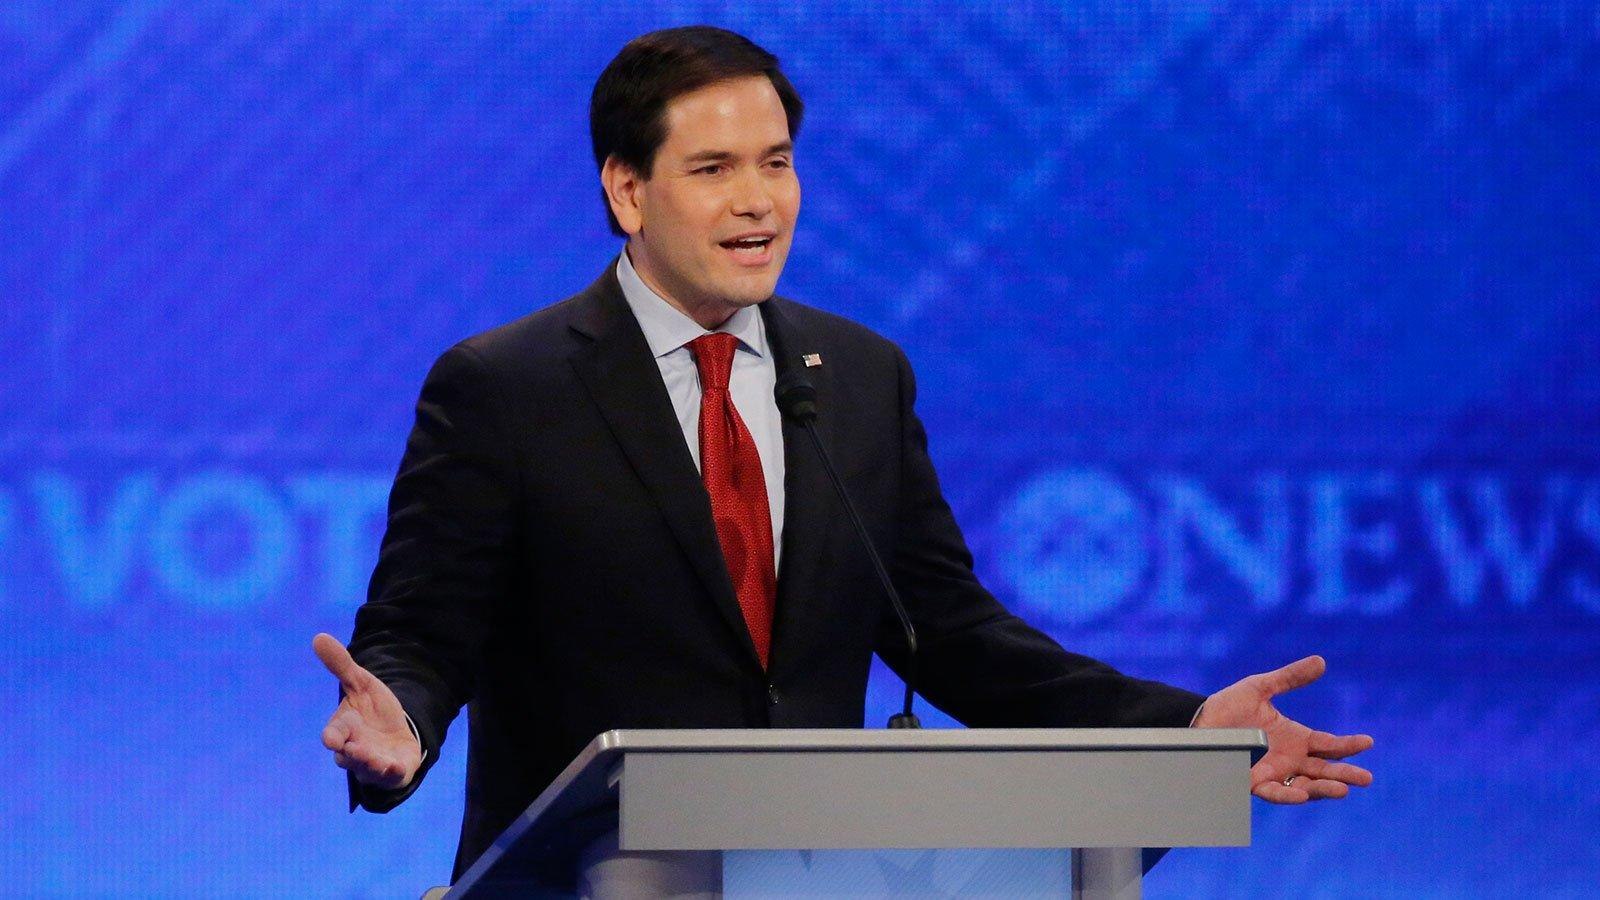 How Rubio's Debate Stumble Could Derail Him as the 'Establishment Candidate'